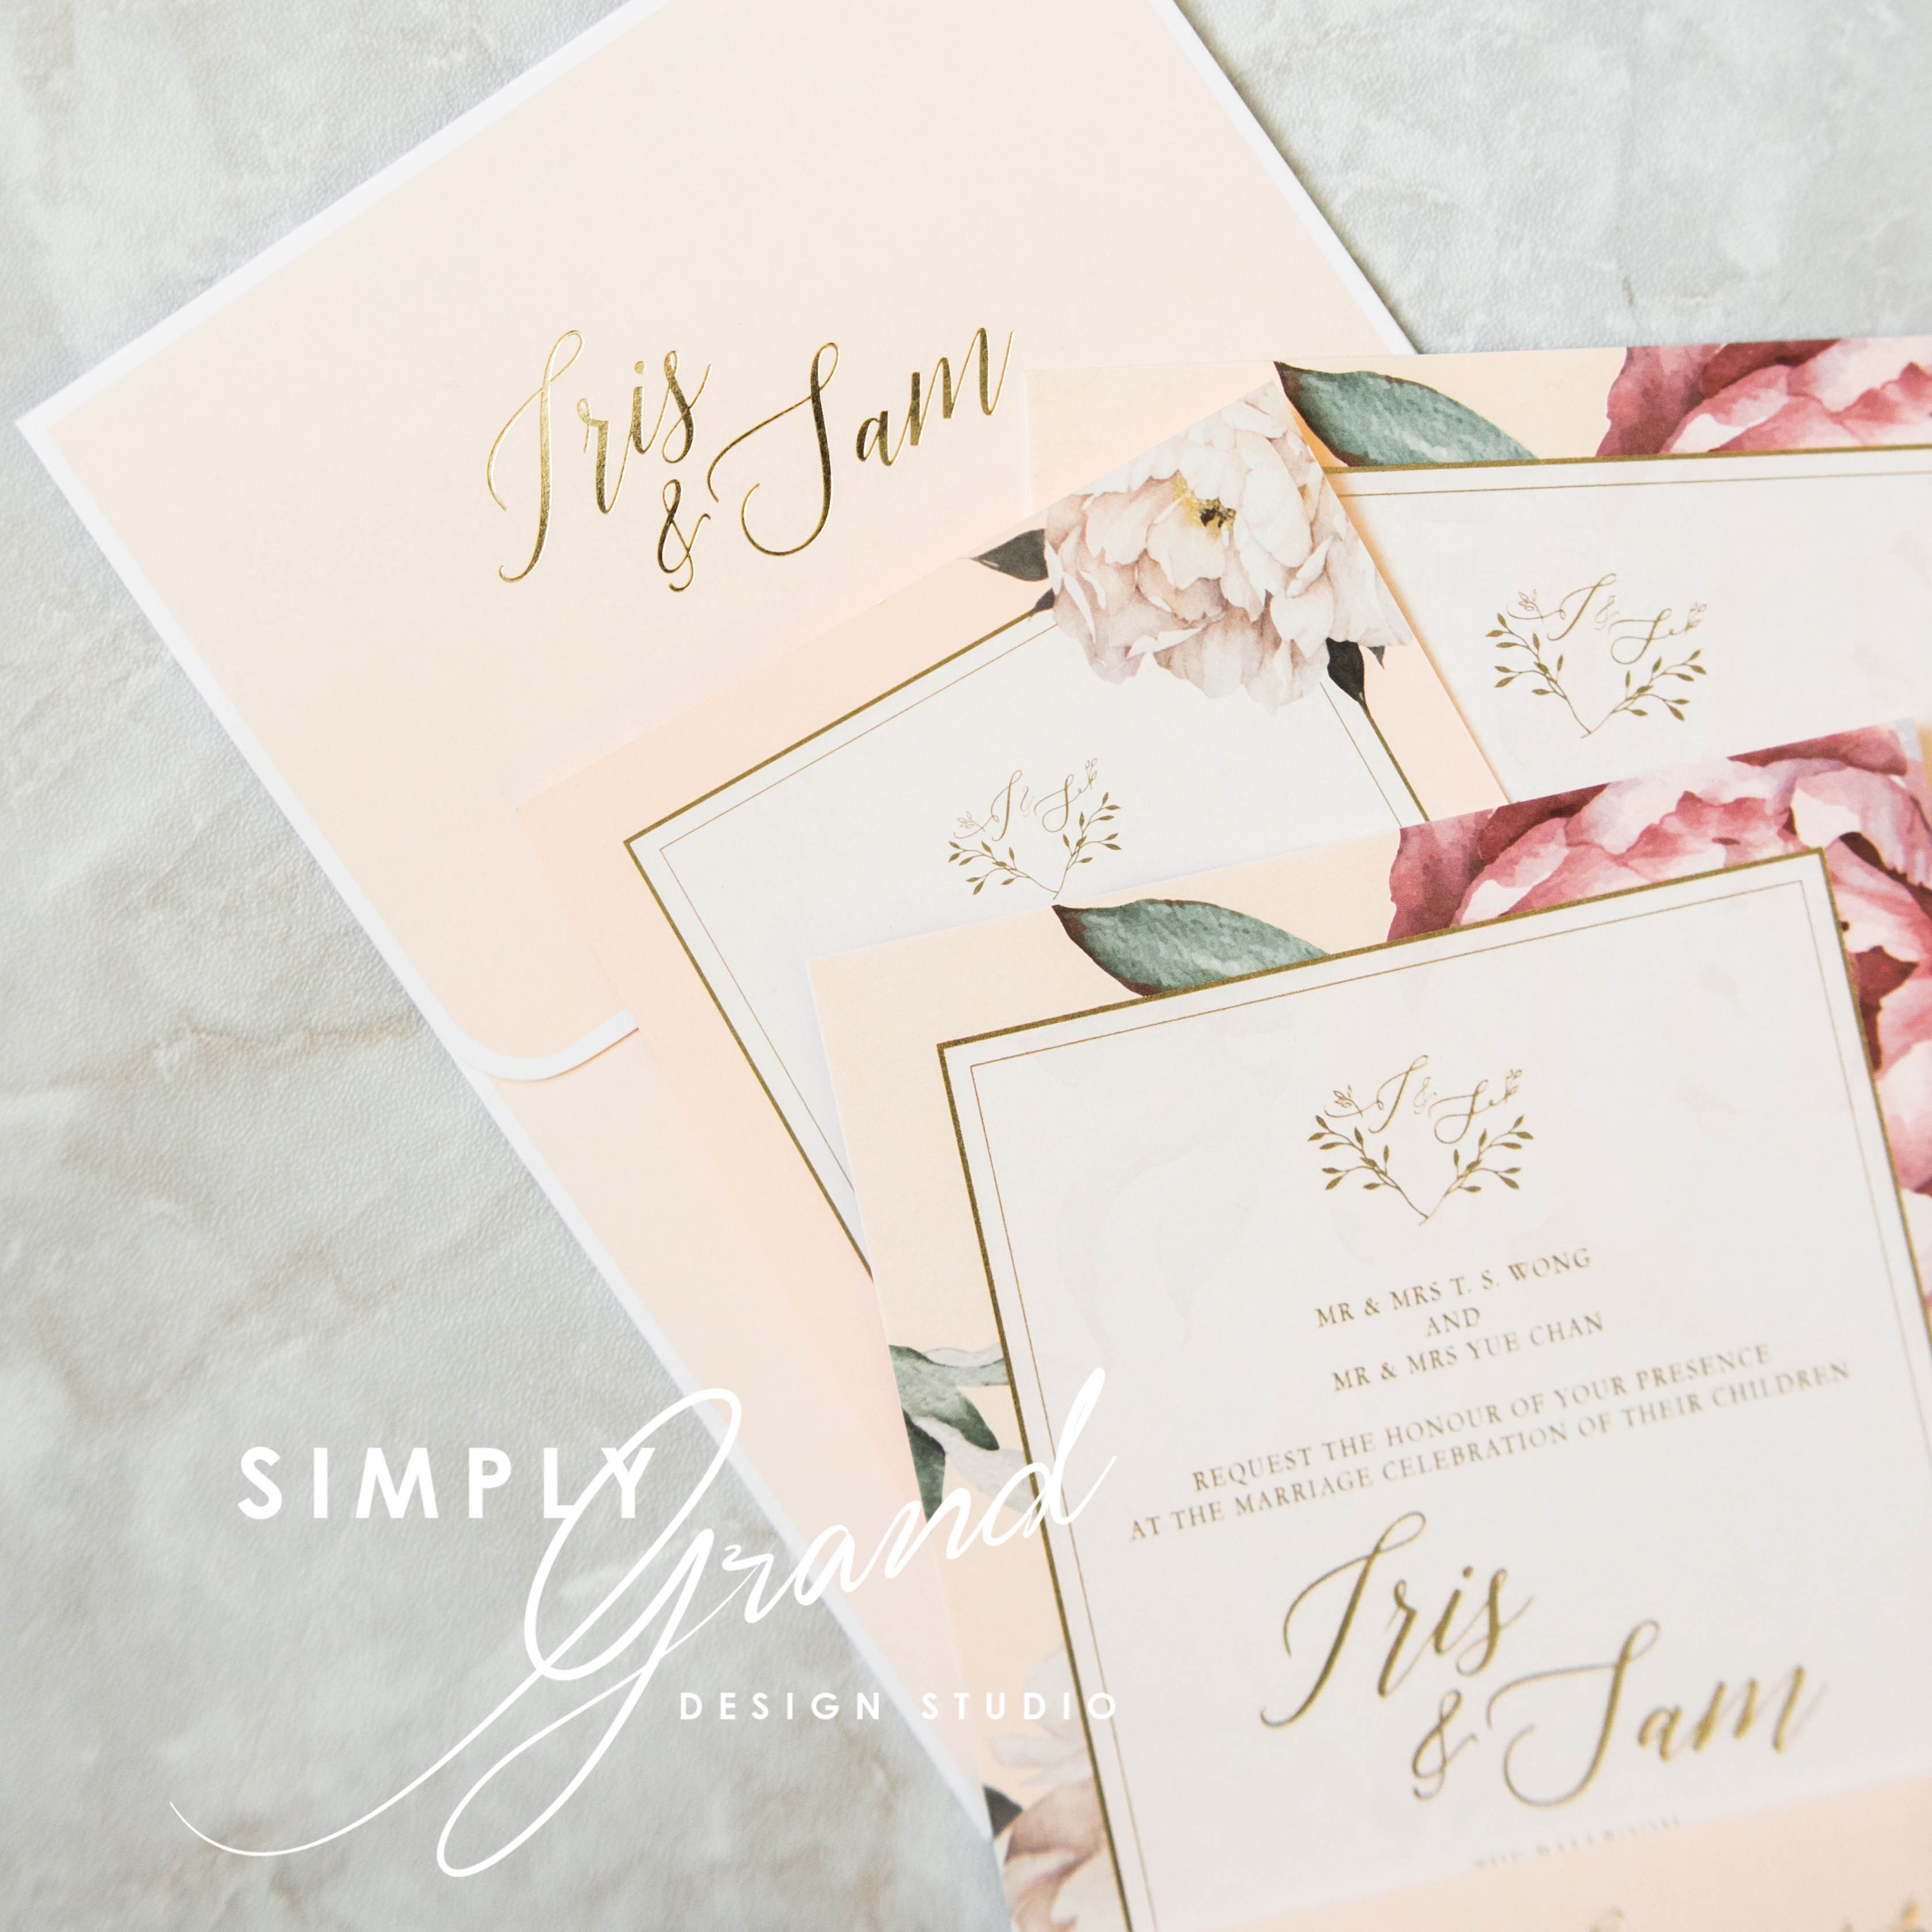 Simply_Grand_Production_Stationery_Invitation_Card_5_3